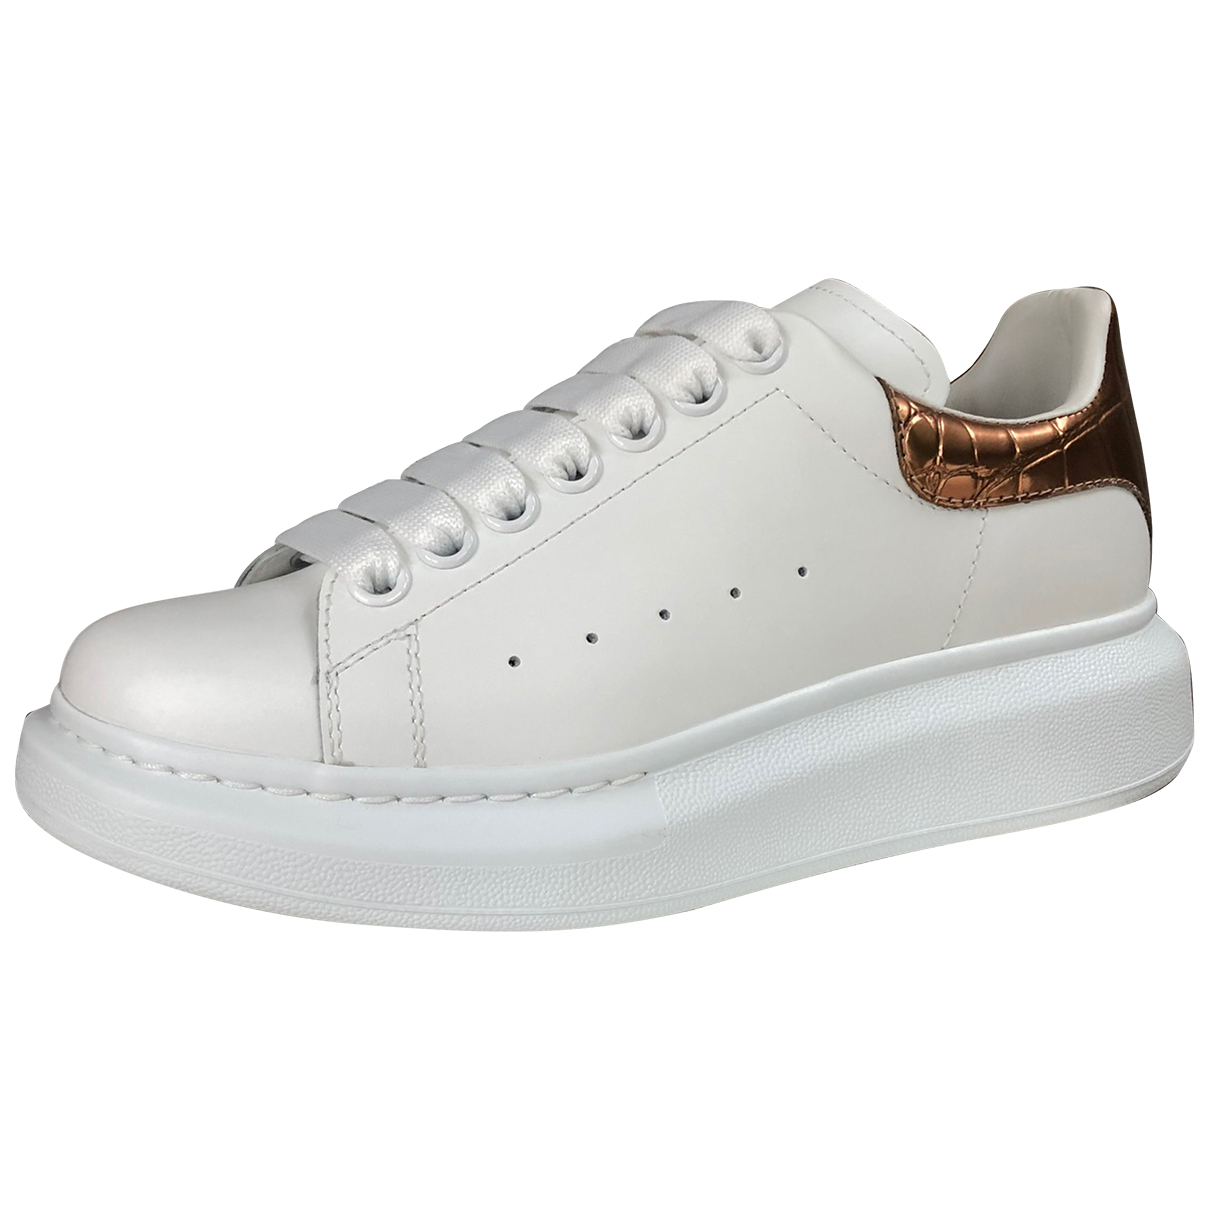 Alexander Mcqueen Oversize White Leather Trainers for Women 36 EU